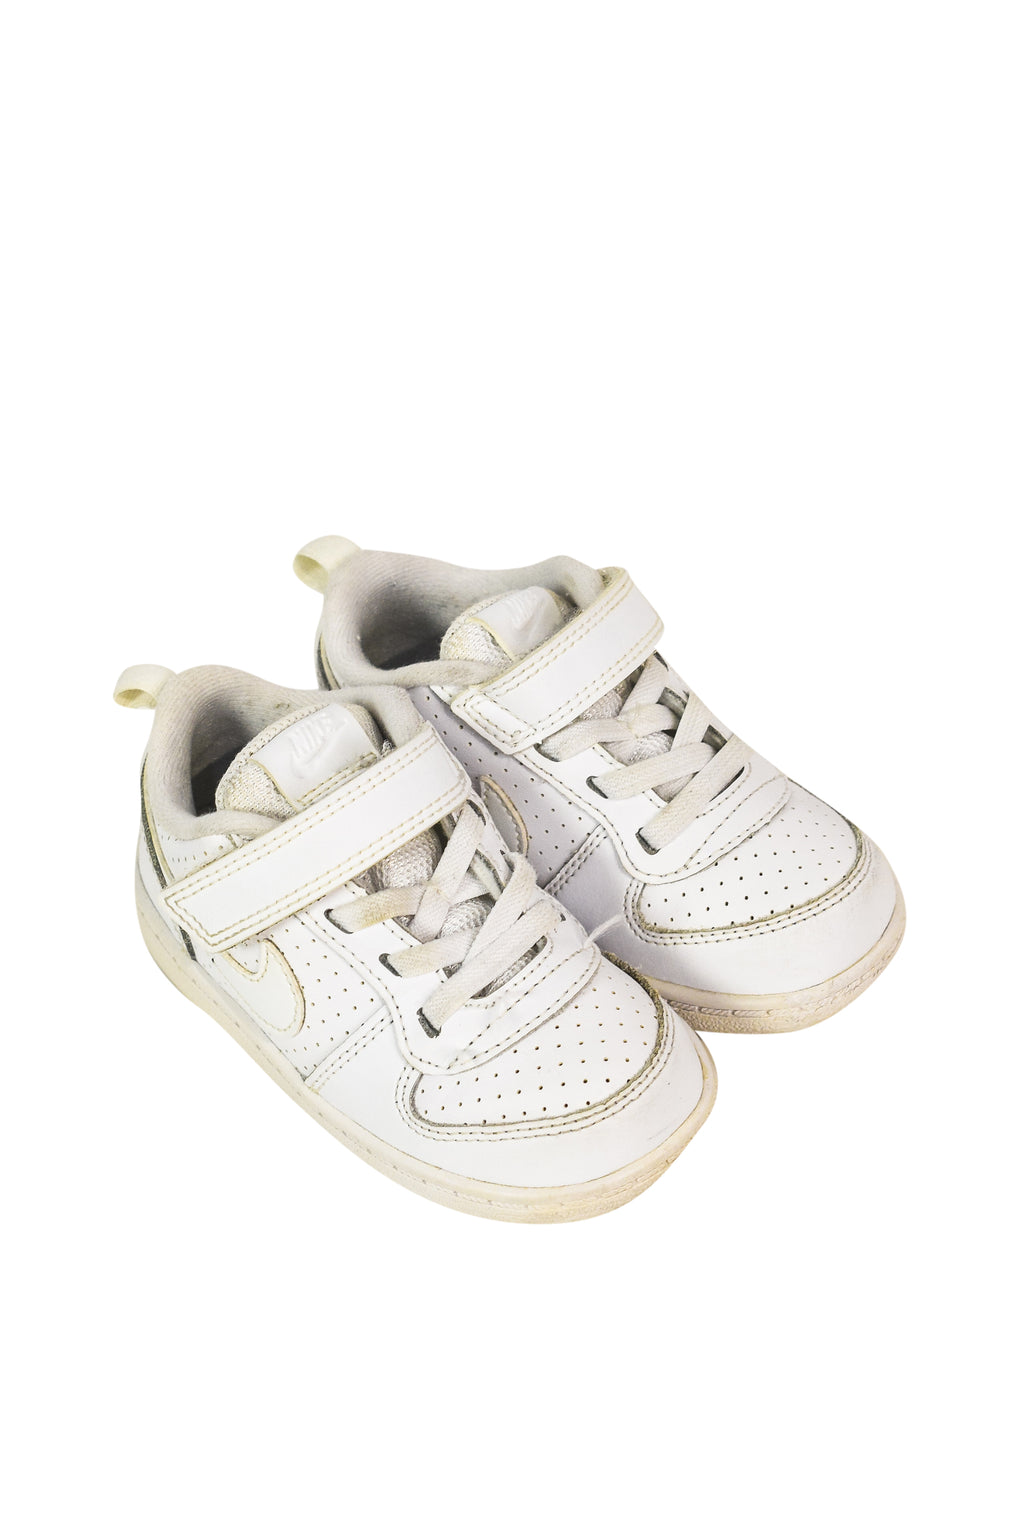 10042565 Nike Baby~Sneakers 18-24M (EU 23.5) at Retykle